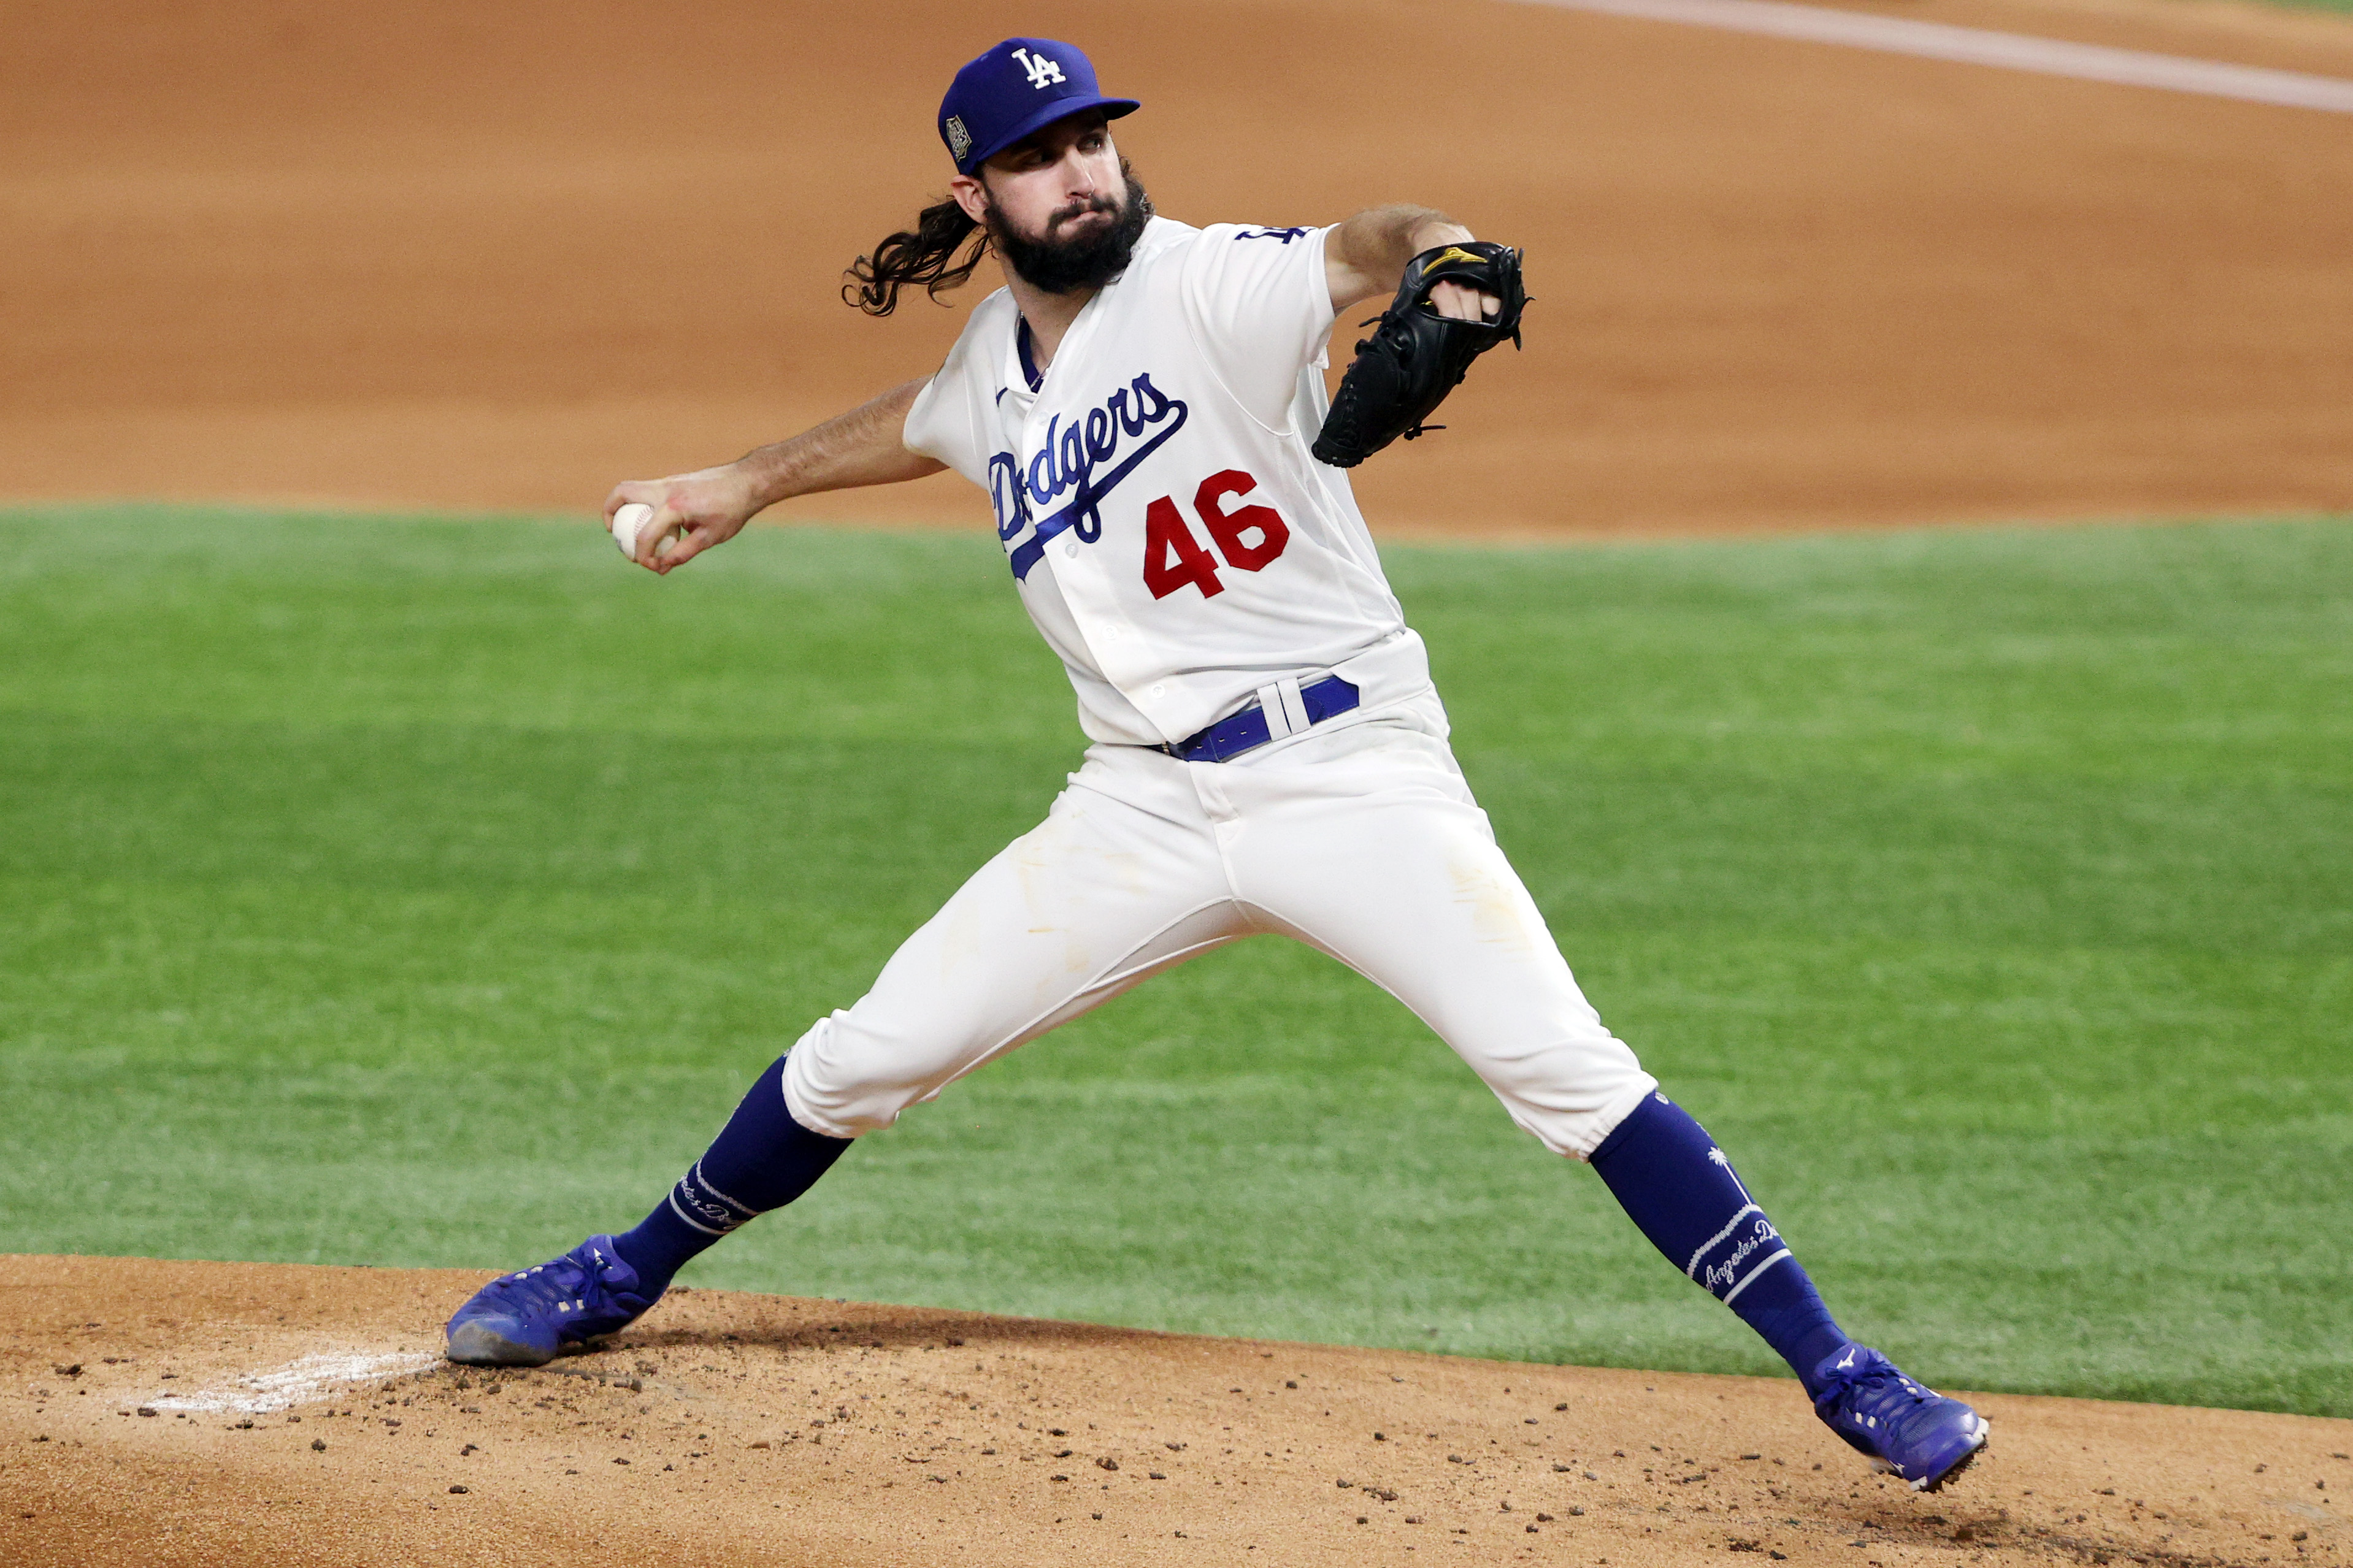 Tony Gonsolin of the Los Angeles Dodgers delivers the pitch against the Tampa Bay Rays during the second inning in Game Two of the 2020 MLB World Series at Globe Life Field on October 21, 2020 in Arlington, Texas.